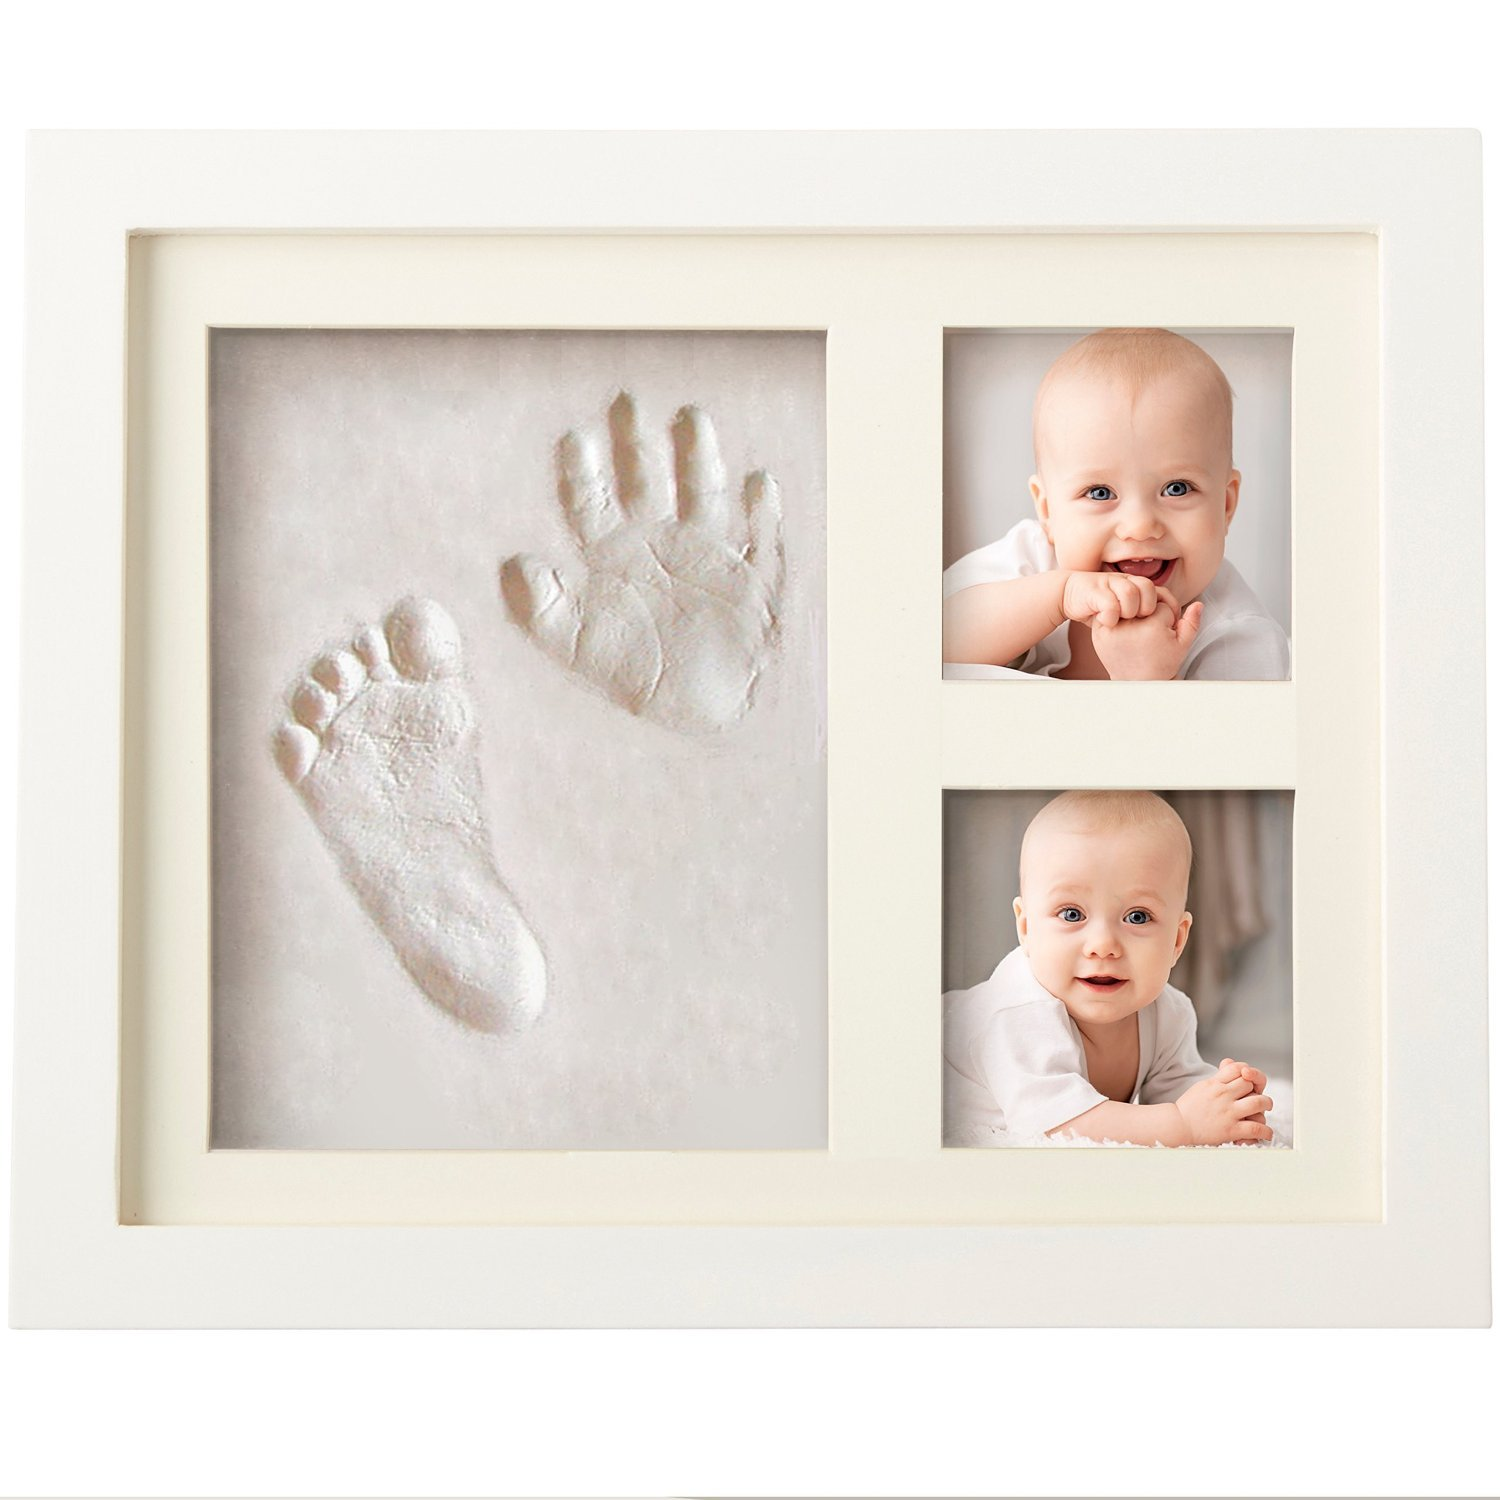 Boss Babies Clay HAND PRINT & FOOTPRINT Photo Frame Kit for Newborn Boys and Girls Personalised Baby Shower Gift Unique and Memorable Keepsake Box For Baby Room Wall Decoration and Nursery Decor